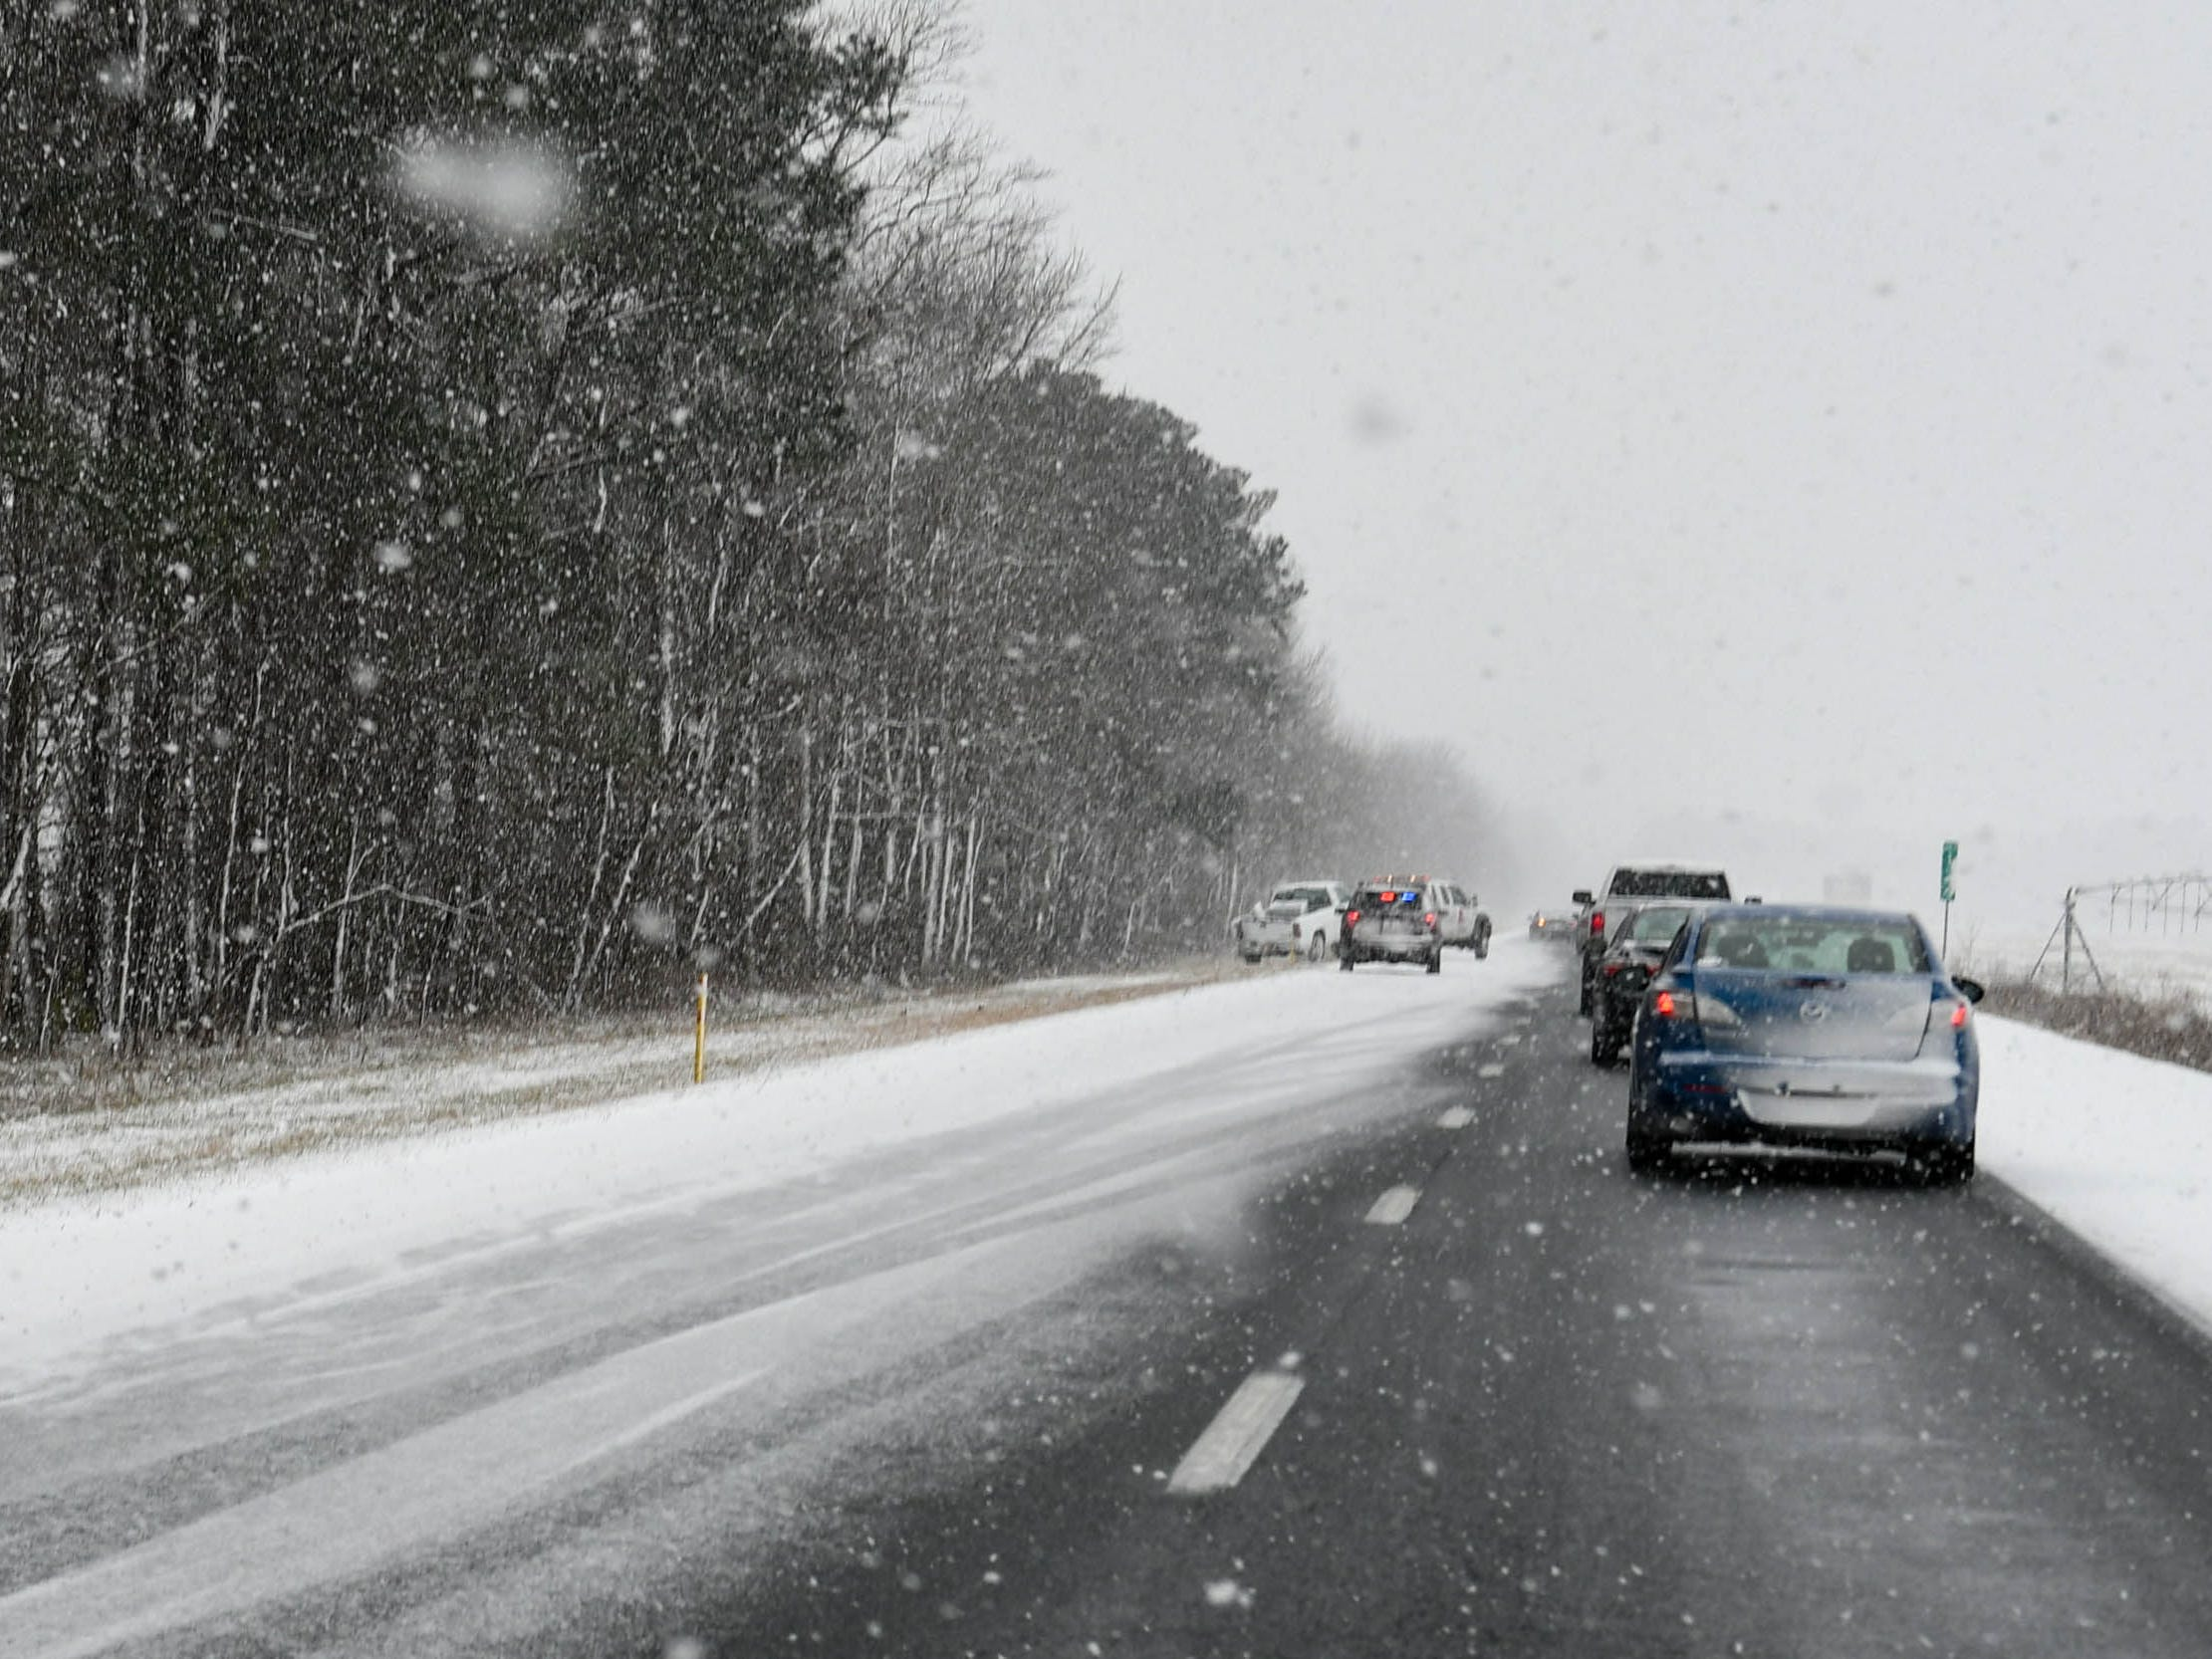 Traffic backs up on Route 50 after cars slide off during a storm on Friday, Feb. 1, 2019.